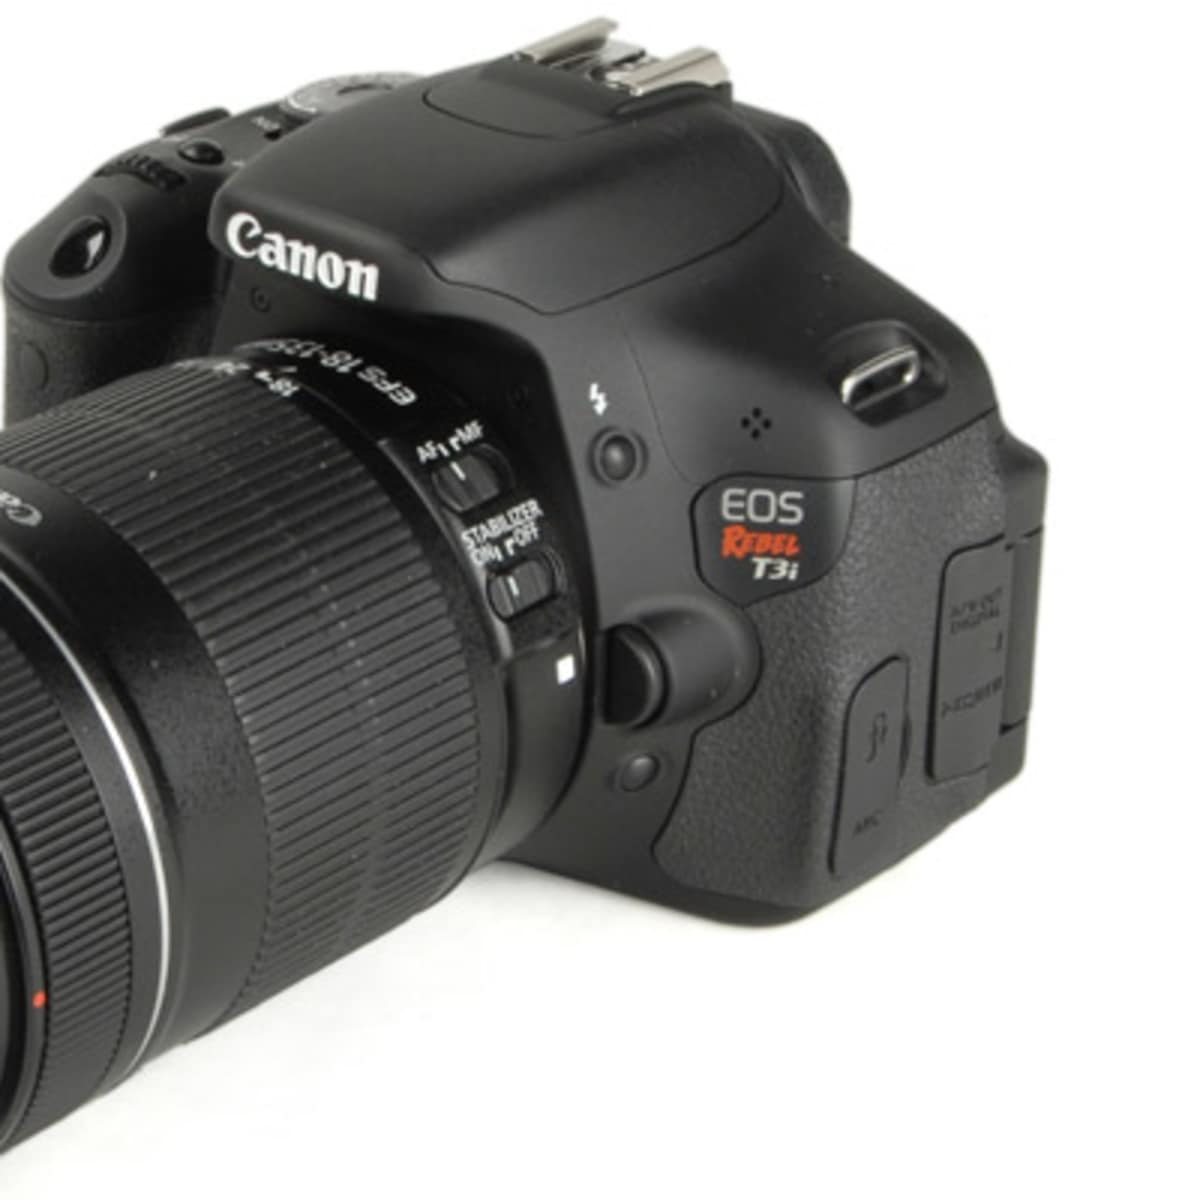 Canon T3i DSLR Camera Review - Reviewed Camcorders